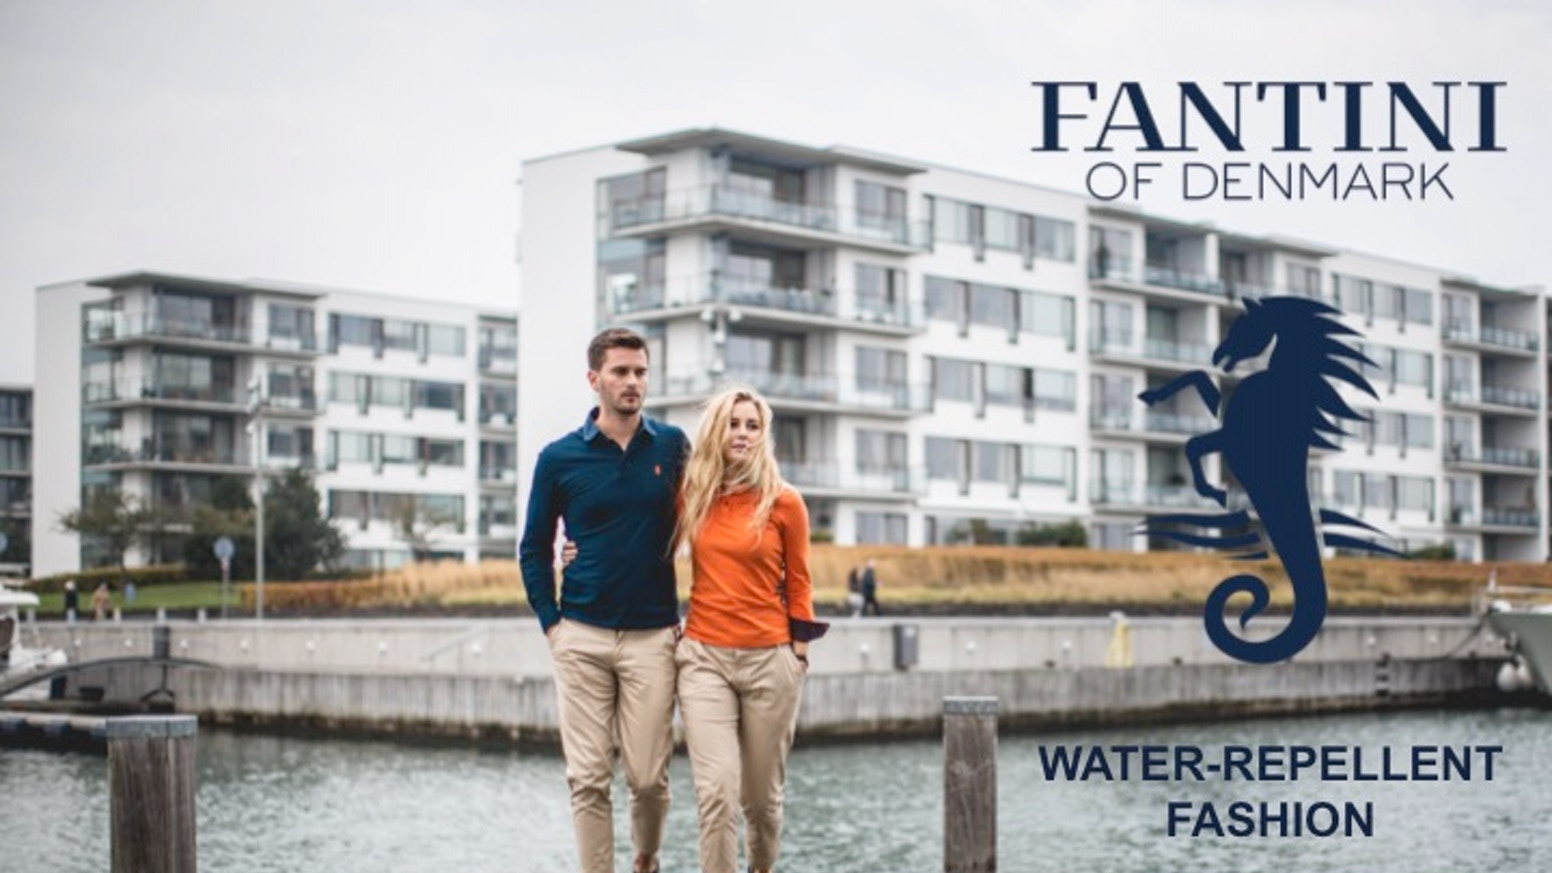 Fantini of Denmark is all about elegance, quality and practicality to accommodate every situation and always being prepared.